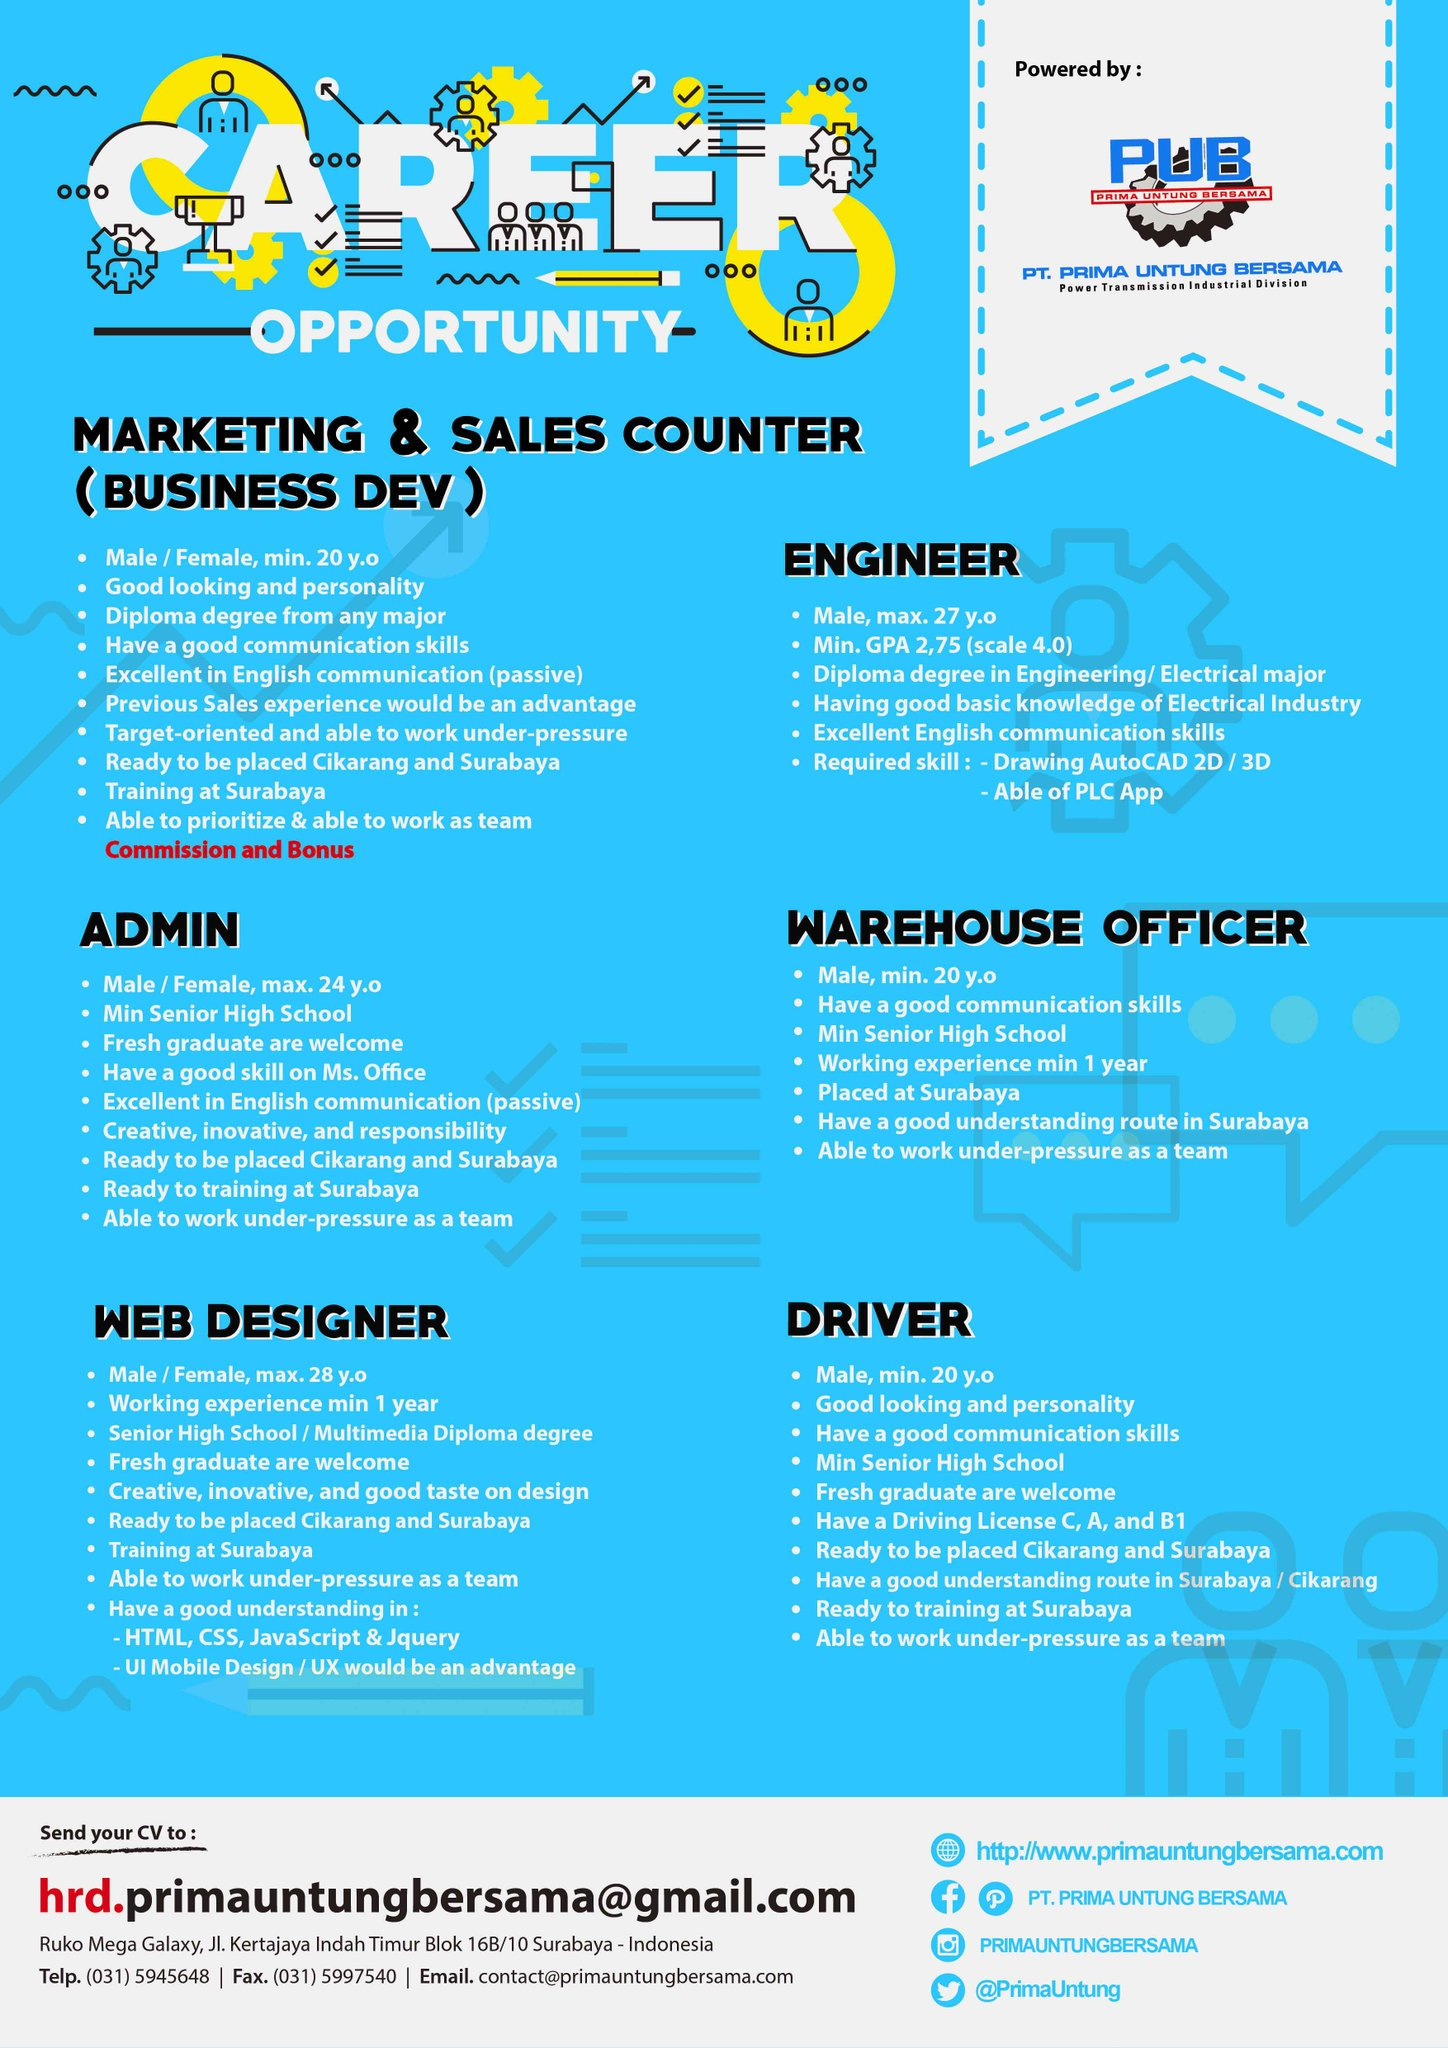 Primauntungbersama On Twitter Looking For A Job Pubfriends